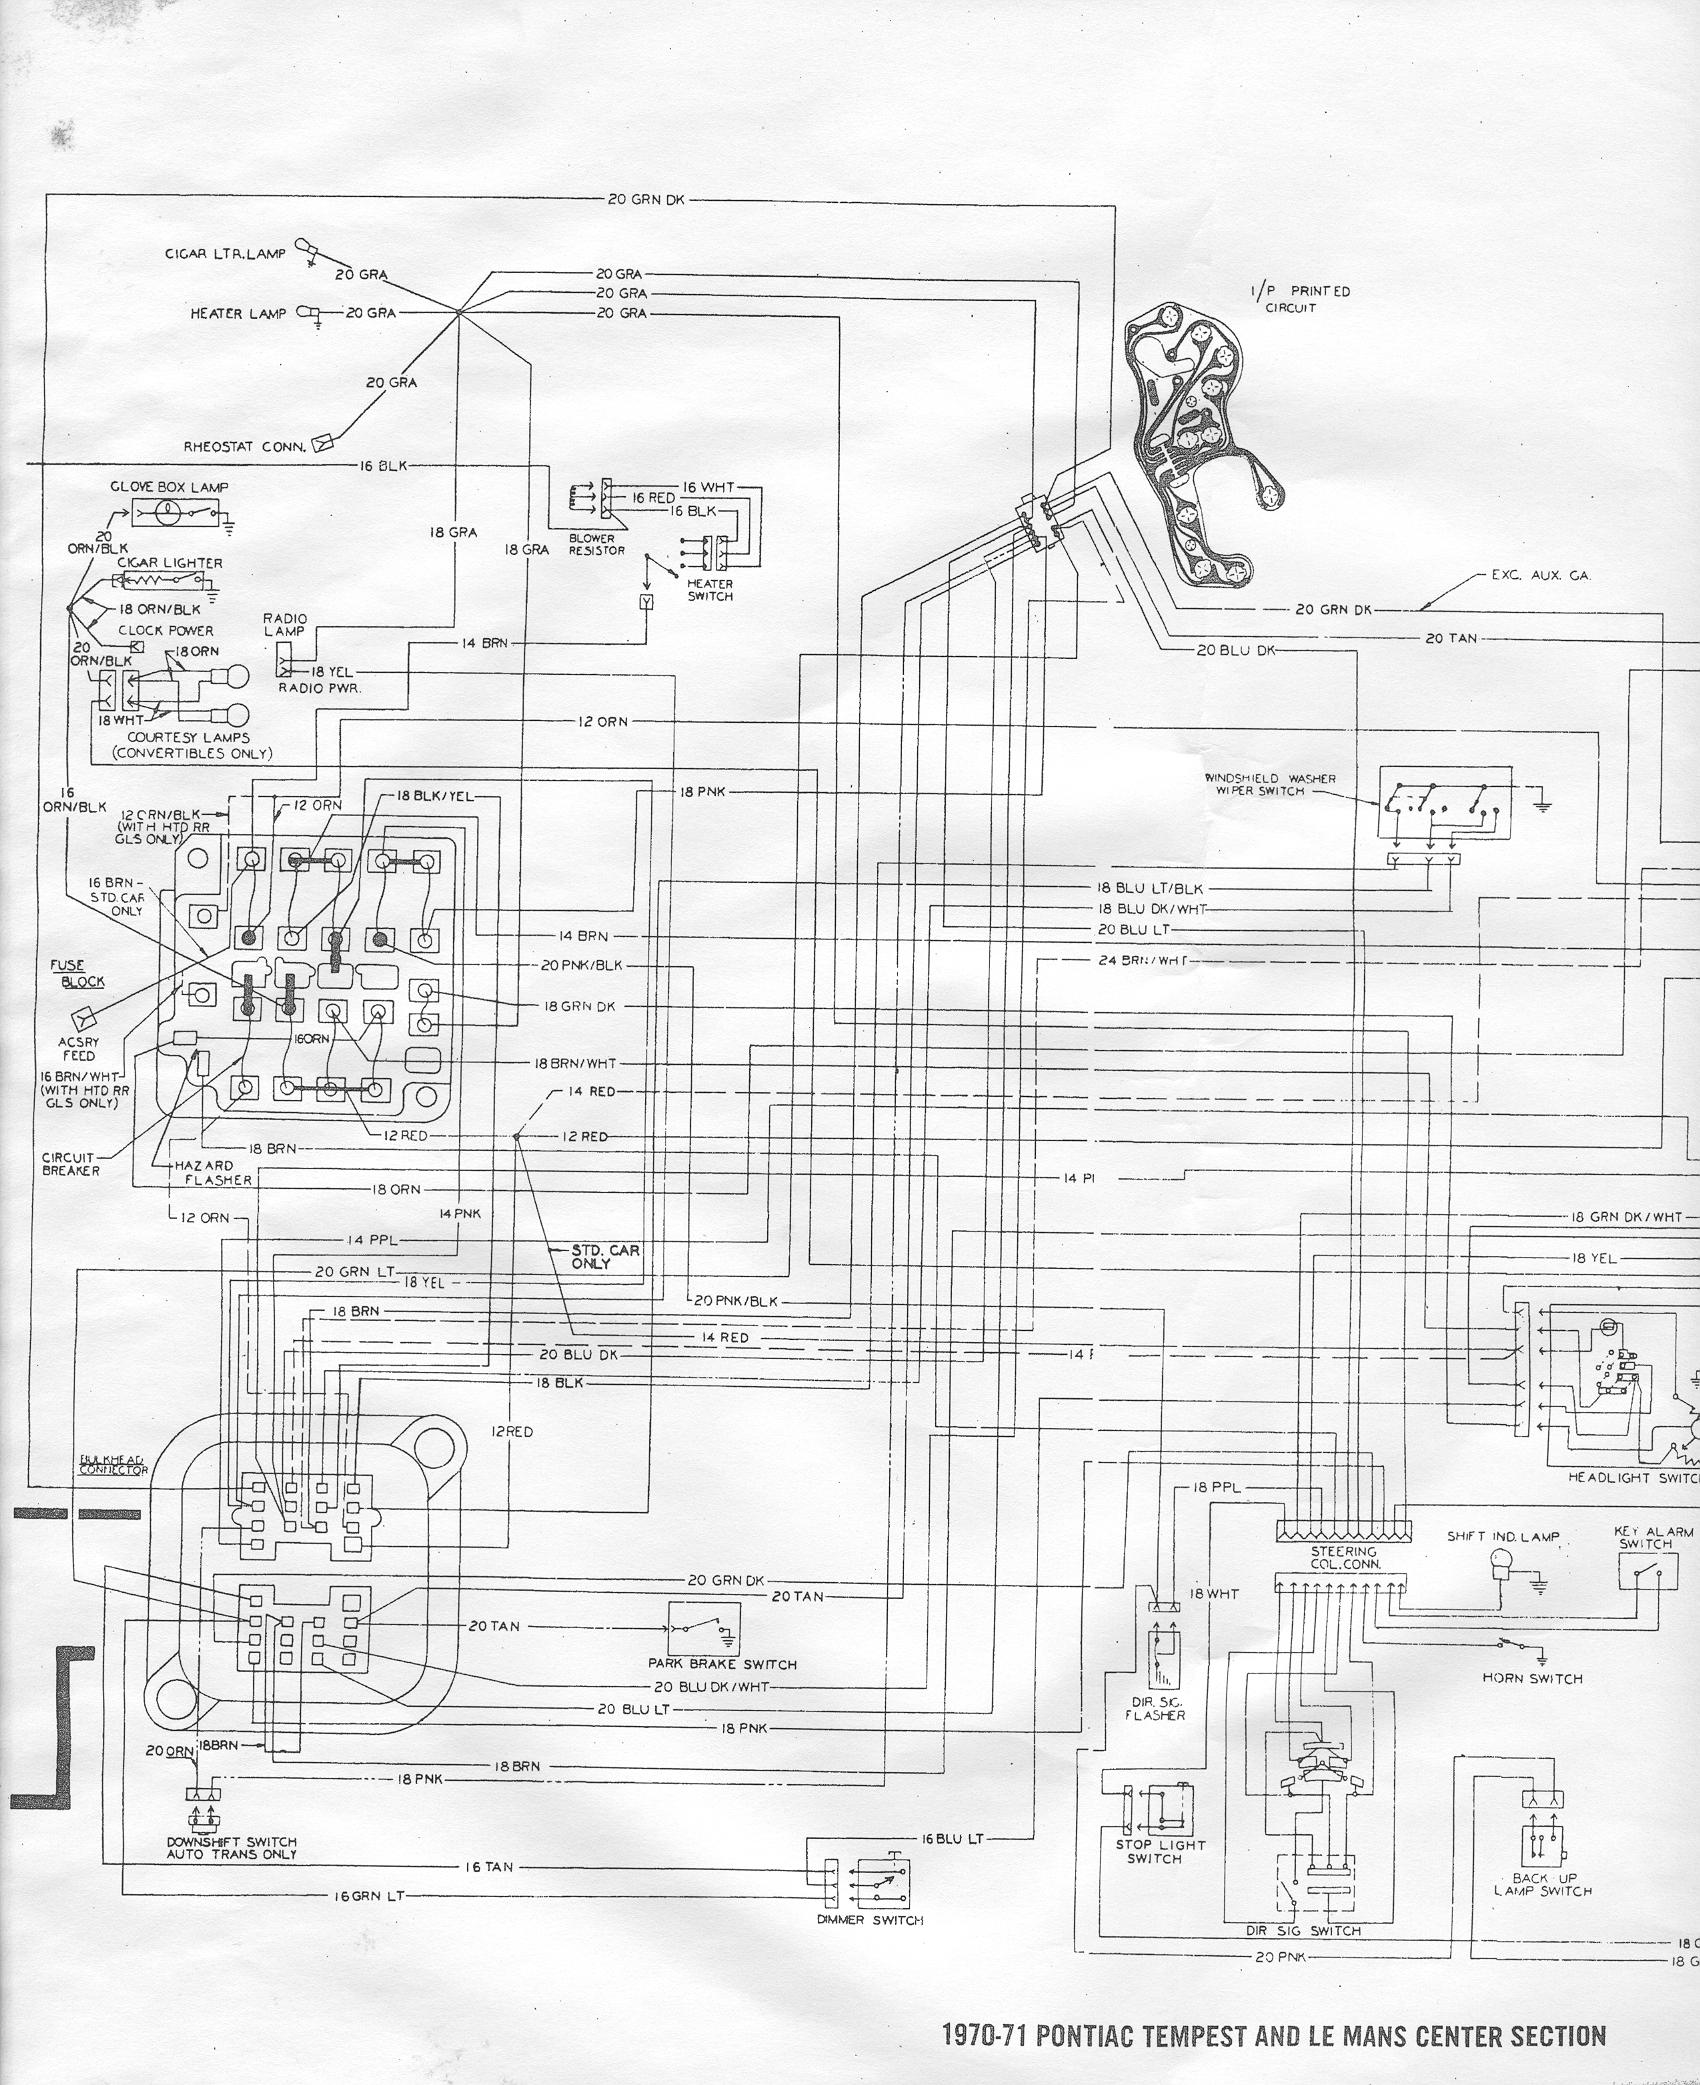 GTO Wiring Diagram scans - Pontiac GTO Forum on 1968 pontiac lemans clock, 1971 pontiac lemans wiring diagram, 1972 pontiac lemans wiring diagram, 1965 pontiac lemans wiring diagram, 1968 pontiac lemans parts, 1969 pontiac lemans wiring diagram, 1968 pontiac firebird wiring diagram, 1971 ford mustang wiring diagram, 1965 ford mustang wiring diagram, 1967 chevrolet camaro wiring diagram, 1968 pontiac lemans specifications, 1964 pontiac lemans wiring diagram, 1970 dodge challenger wiring diagram, 1969 oldsmobile 442 wiring diagram, 1967 pontiac lemans wiring diagram, 1970 chevrolet chevelle wiring diagram, 1970 pontiac lemans wiring diagram,